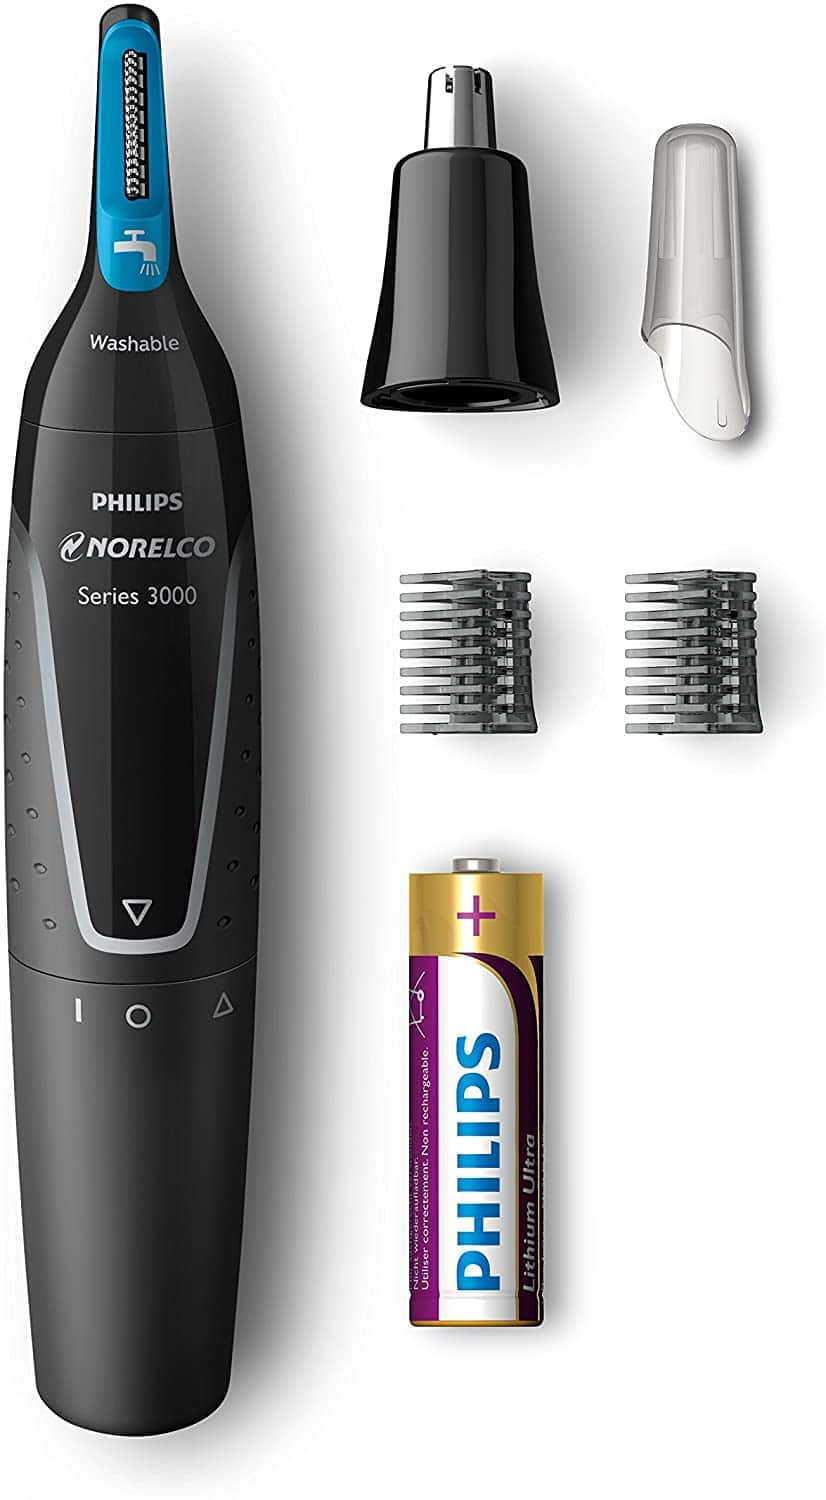 Philips Norelco Nose trimmer 3000, NT3000/49, with 6 pieces for nose, ears and eyebrows $6.99